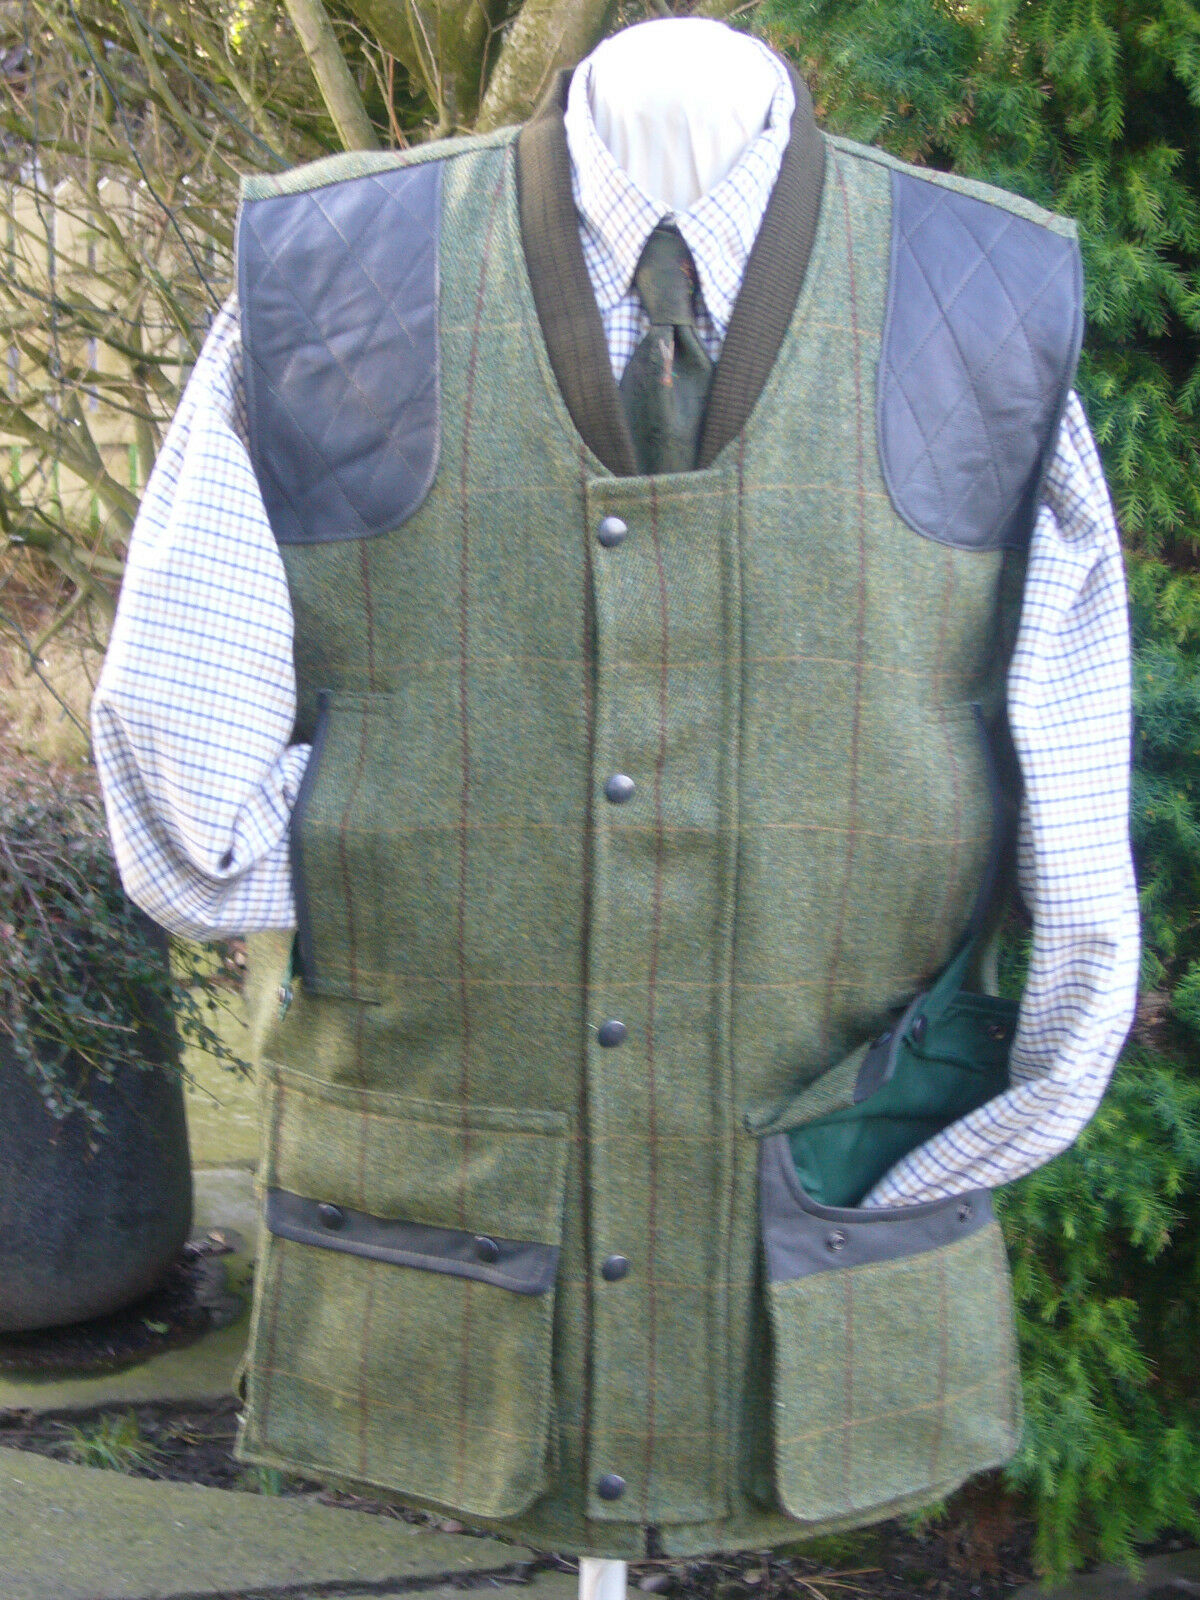 TWEED SHOOTING VEST WOOL NEW SHOOTING HUNTING S-6XL